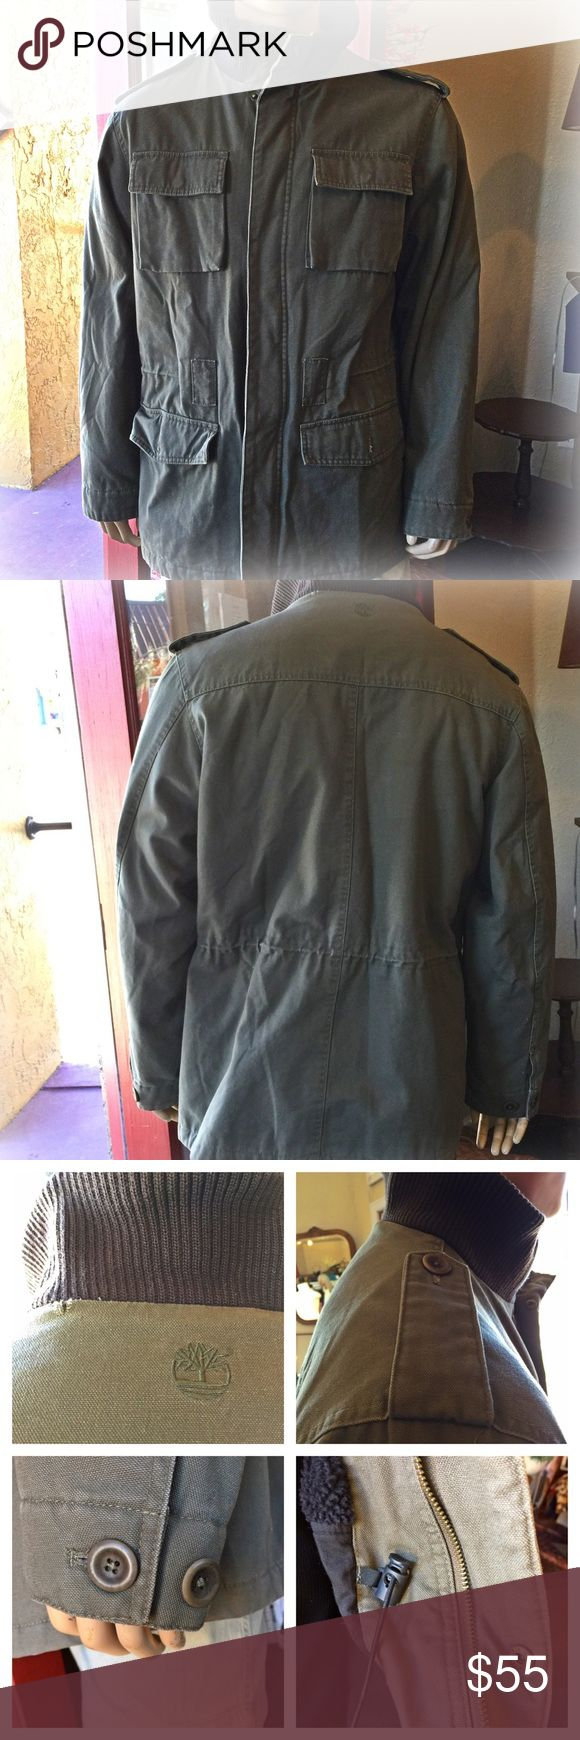 Timberland Rugged Military Jacket Men's Men's Timberland coat. 4 front pockets 2 with snaps, 2 with buttons. 1 inside pocket. Drawcord at waist. Zipper and snap closure. Only sign of wear is by the back of the neck -see 1st picture in 1st collage. This is an awesome jacket!! Timberland Jackets & Coats Military & Field